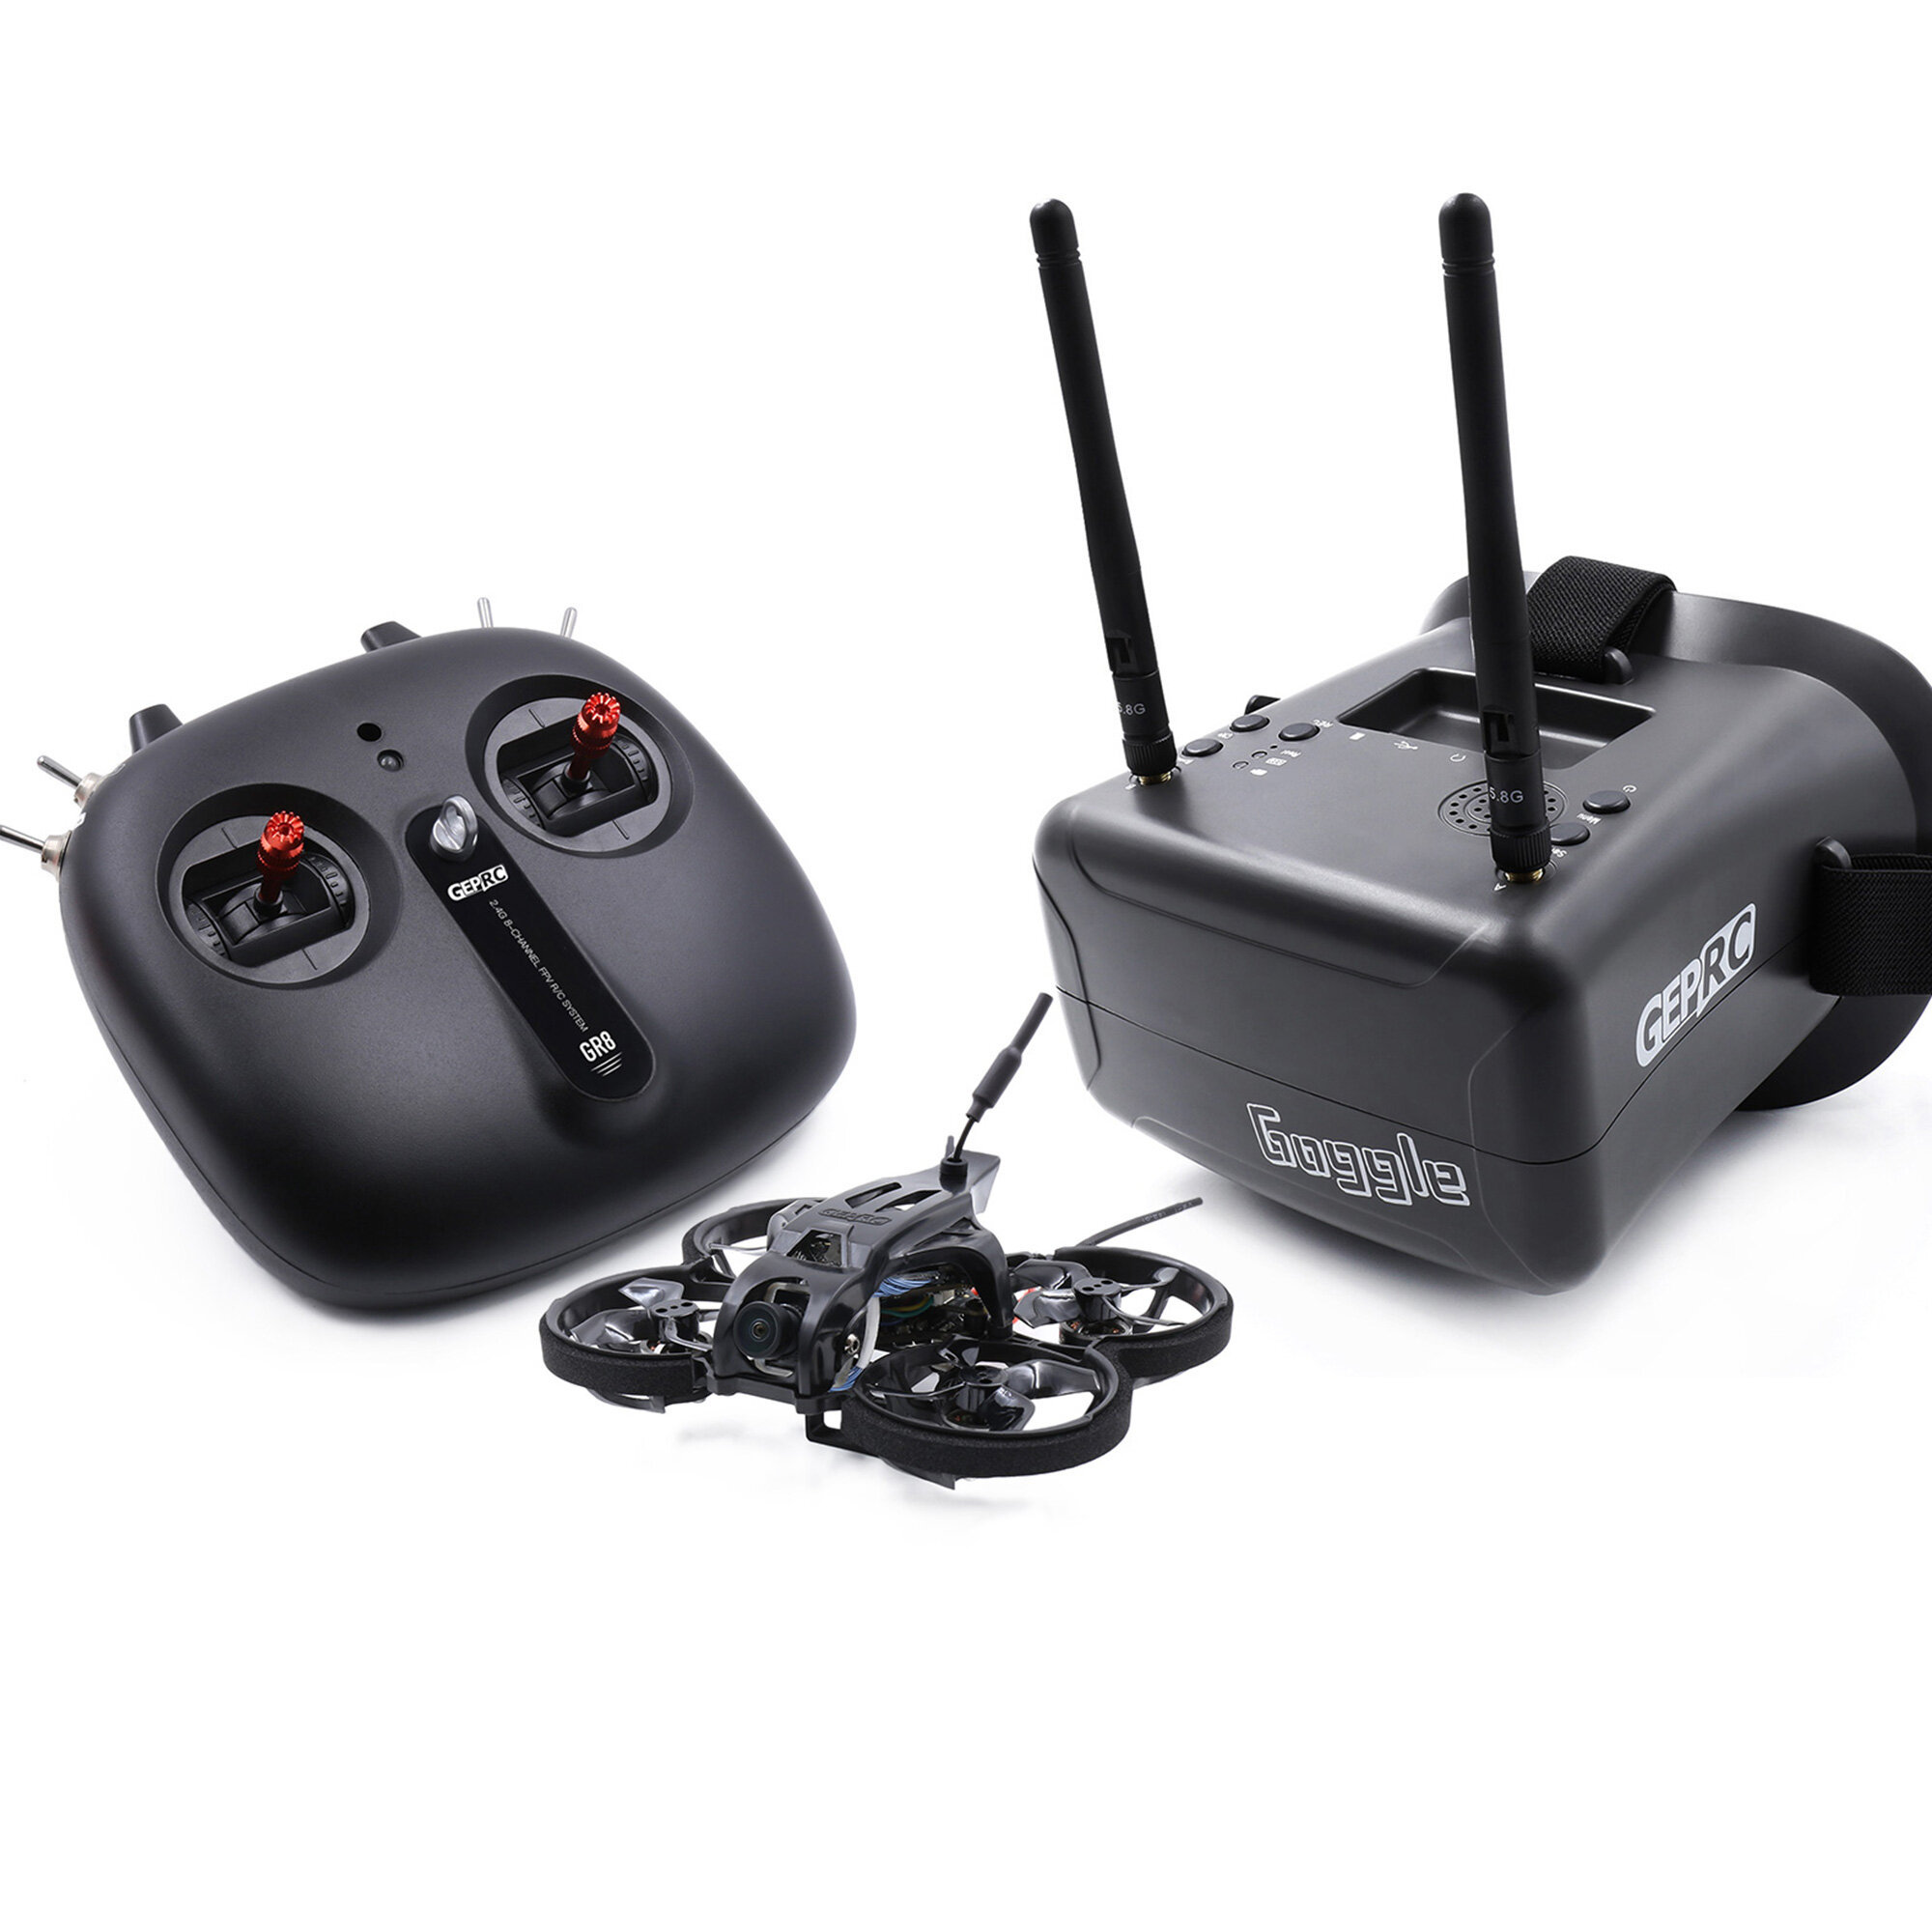 GEPRC TinyGO 1.6inch 2S 4K Caddx Loris FPV Indoor Whoop+GR8 Remote Controller+RG1 Goggles RTF Ready To Fly FPV Racing RC Drone